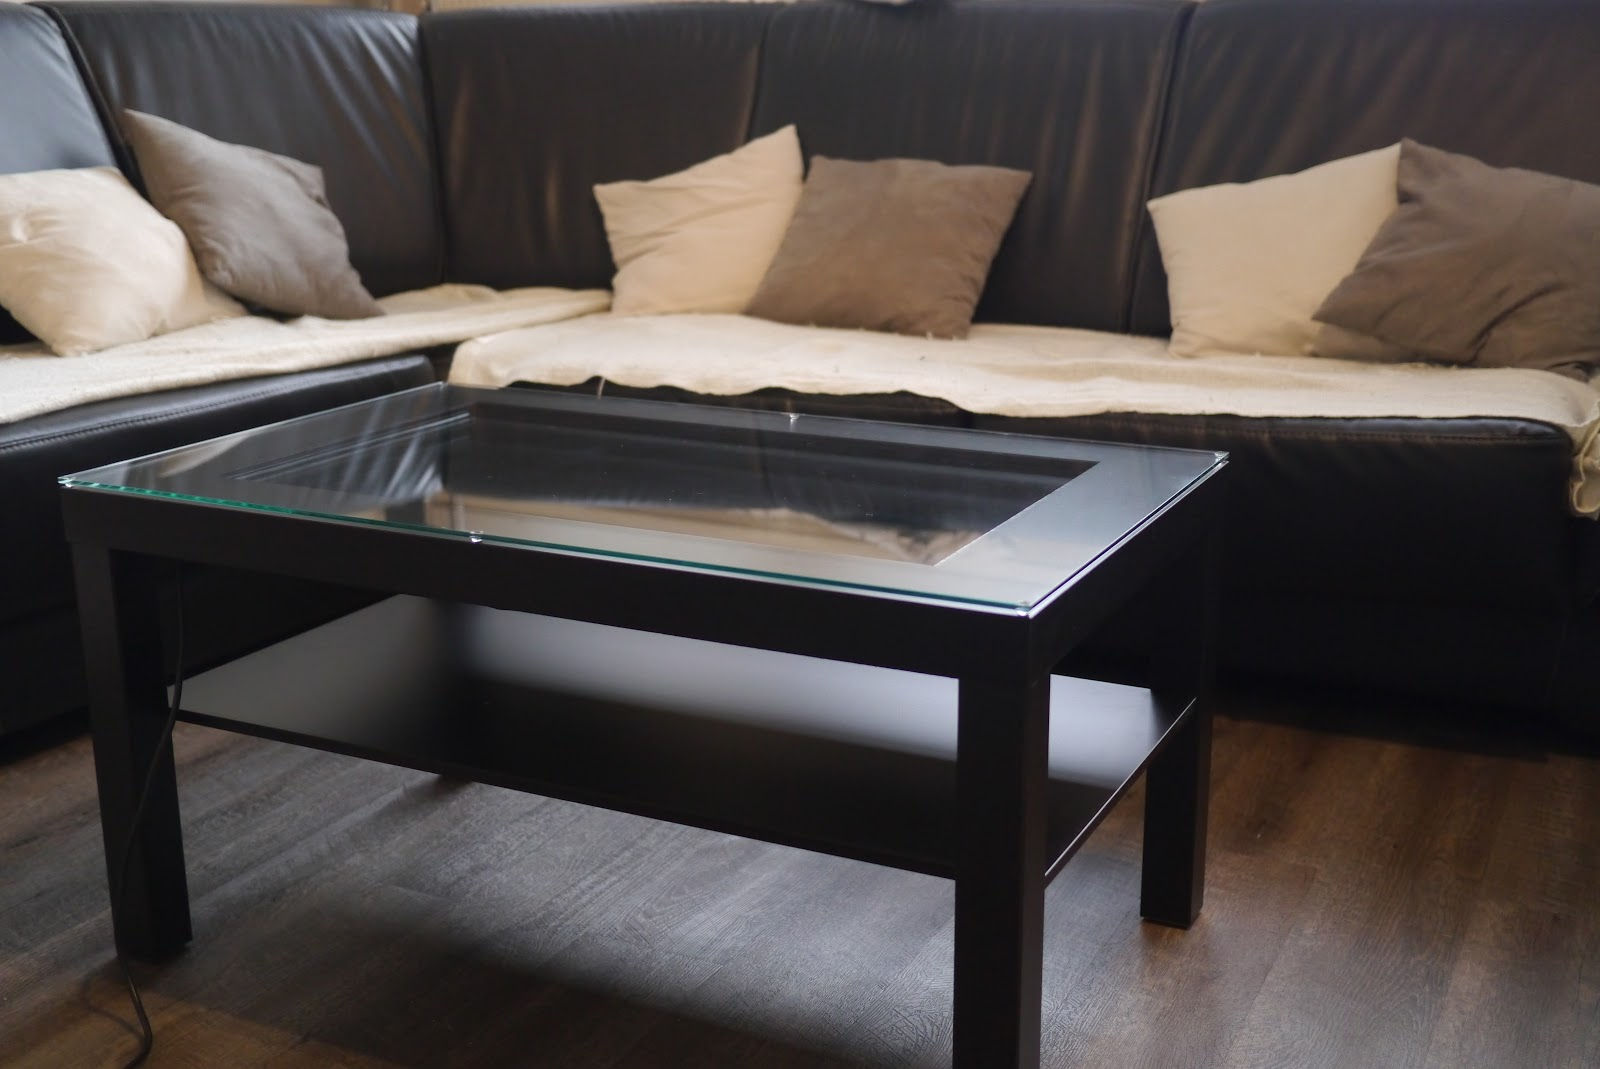 Le diy de droofy table basse tactile v2 pqlab - Table basse plateau verre ...